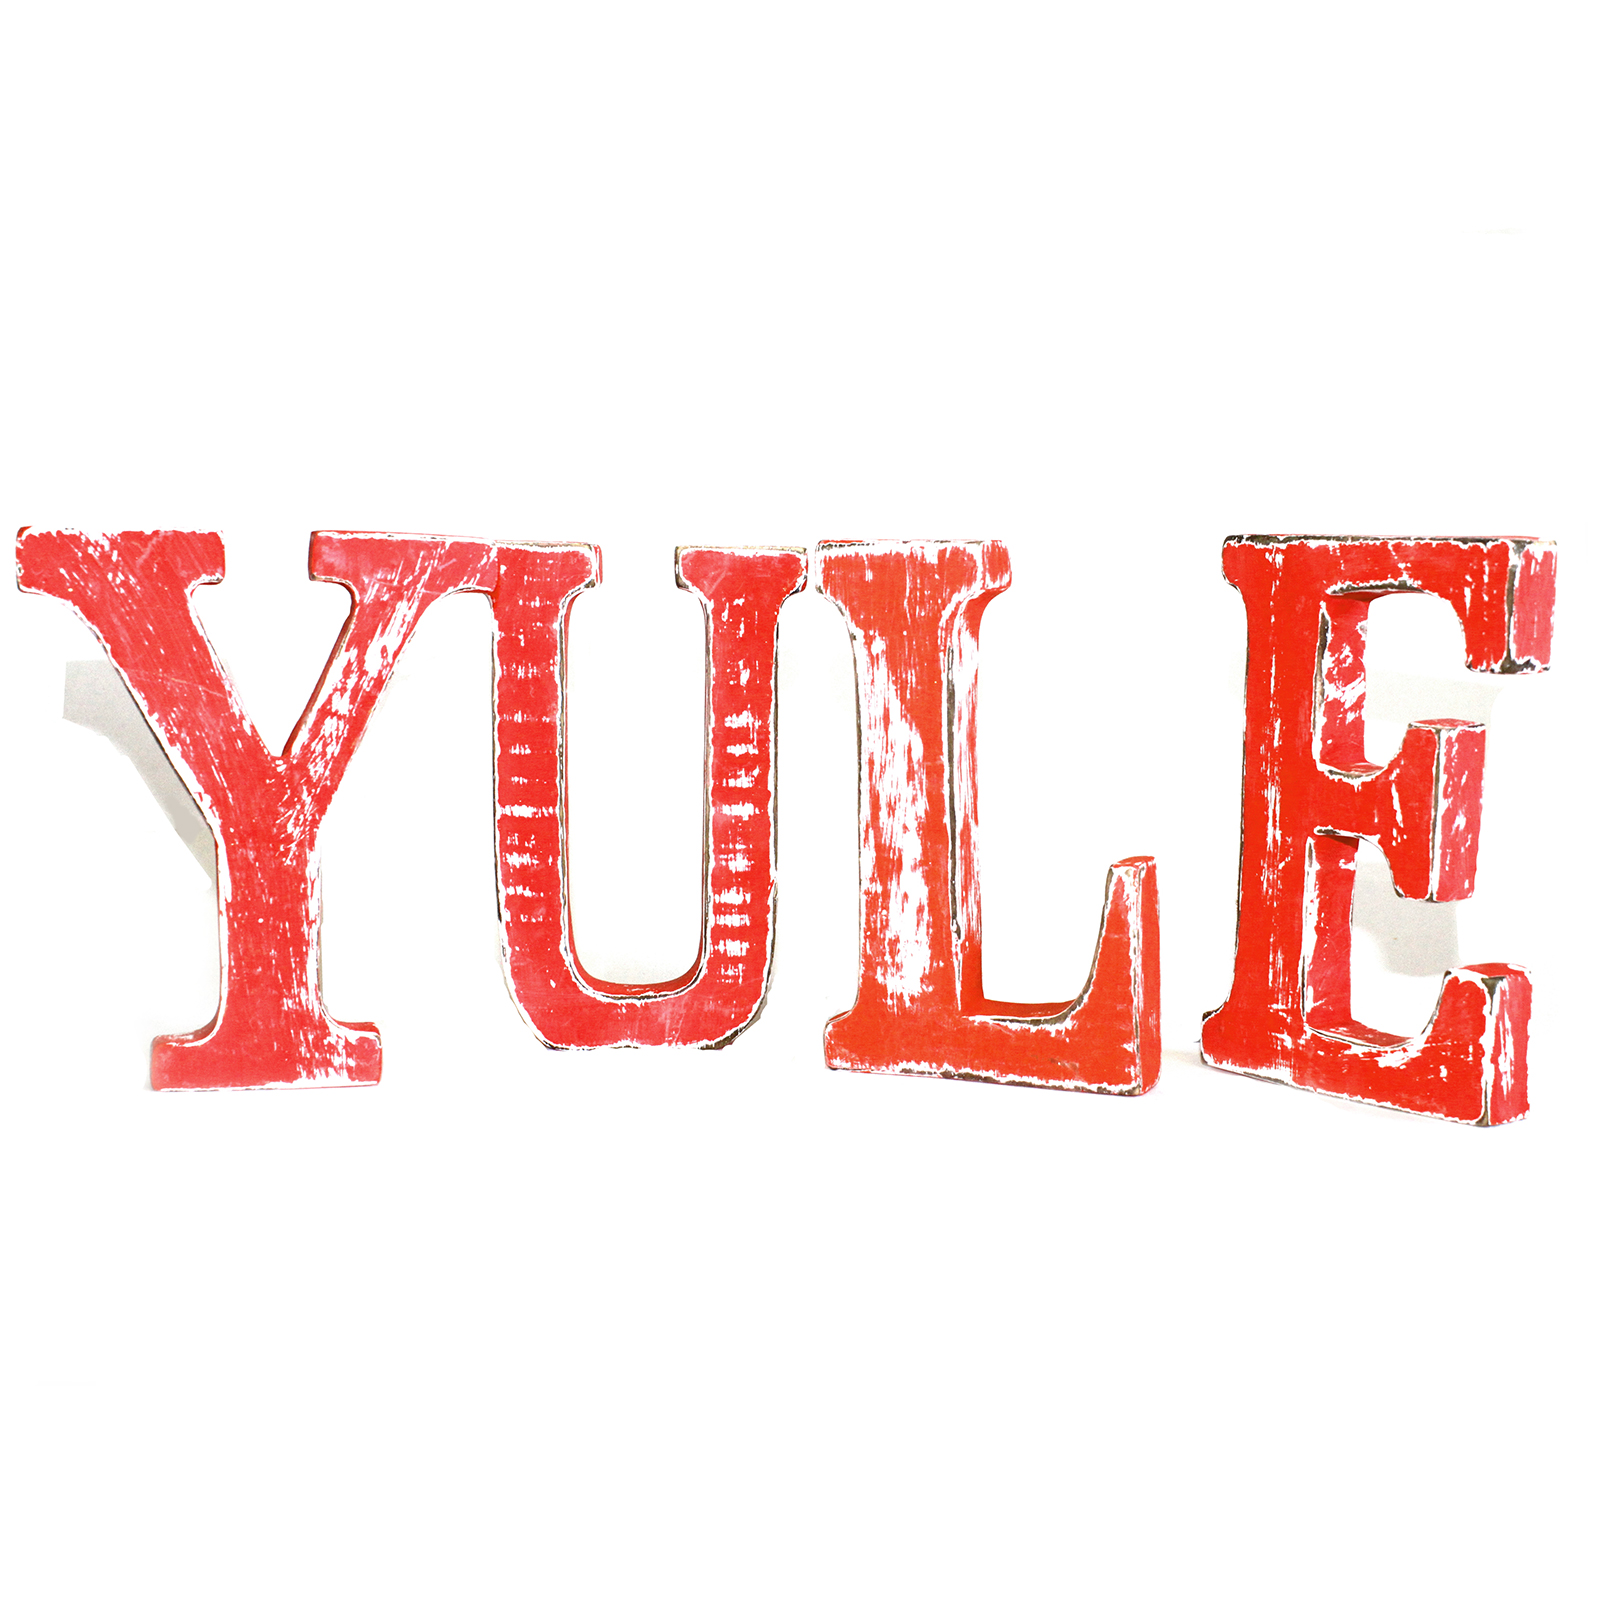 Shabby Chic Letters Red Wash - YULE